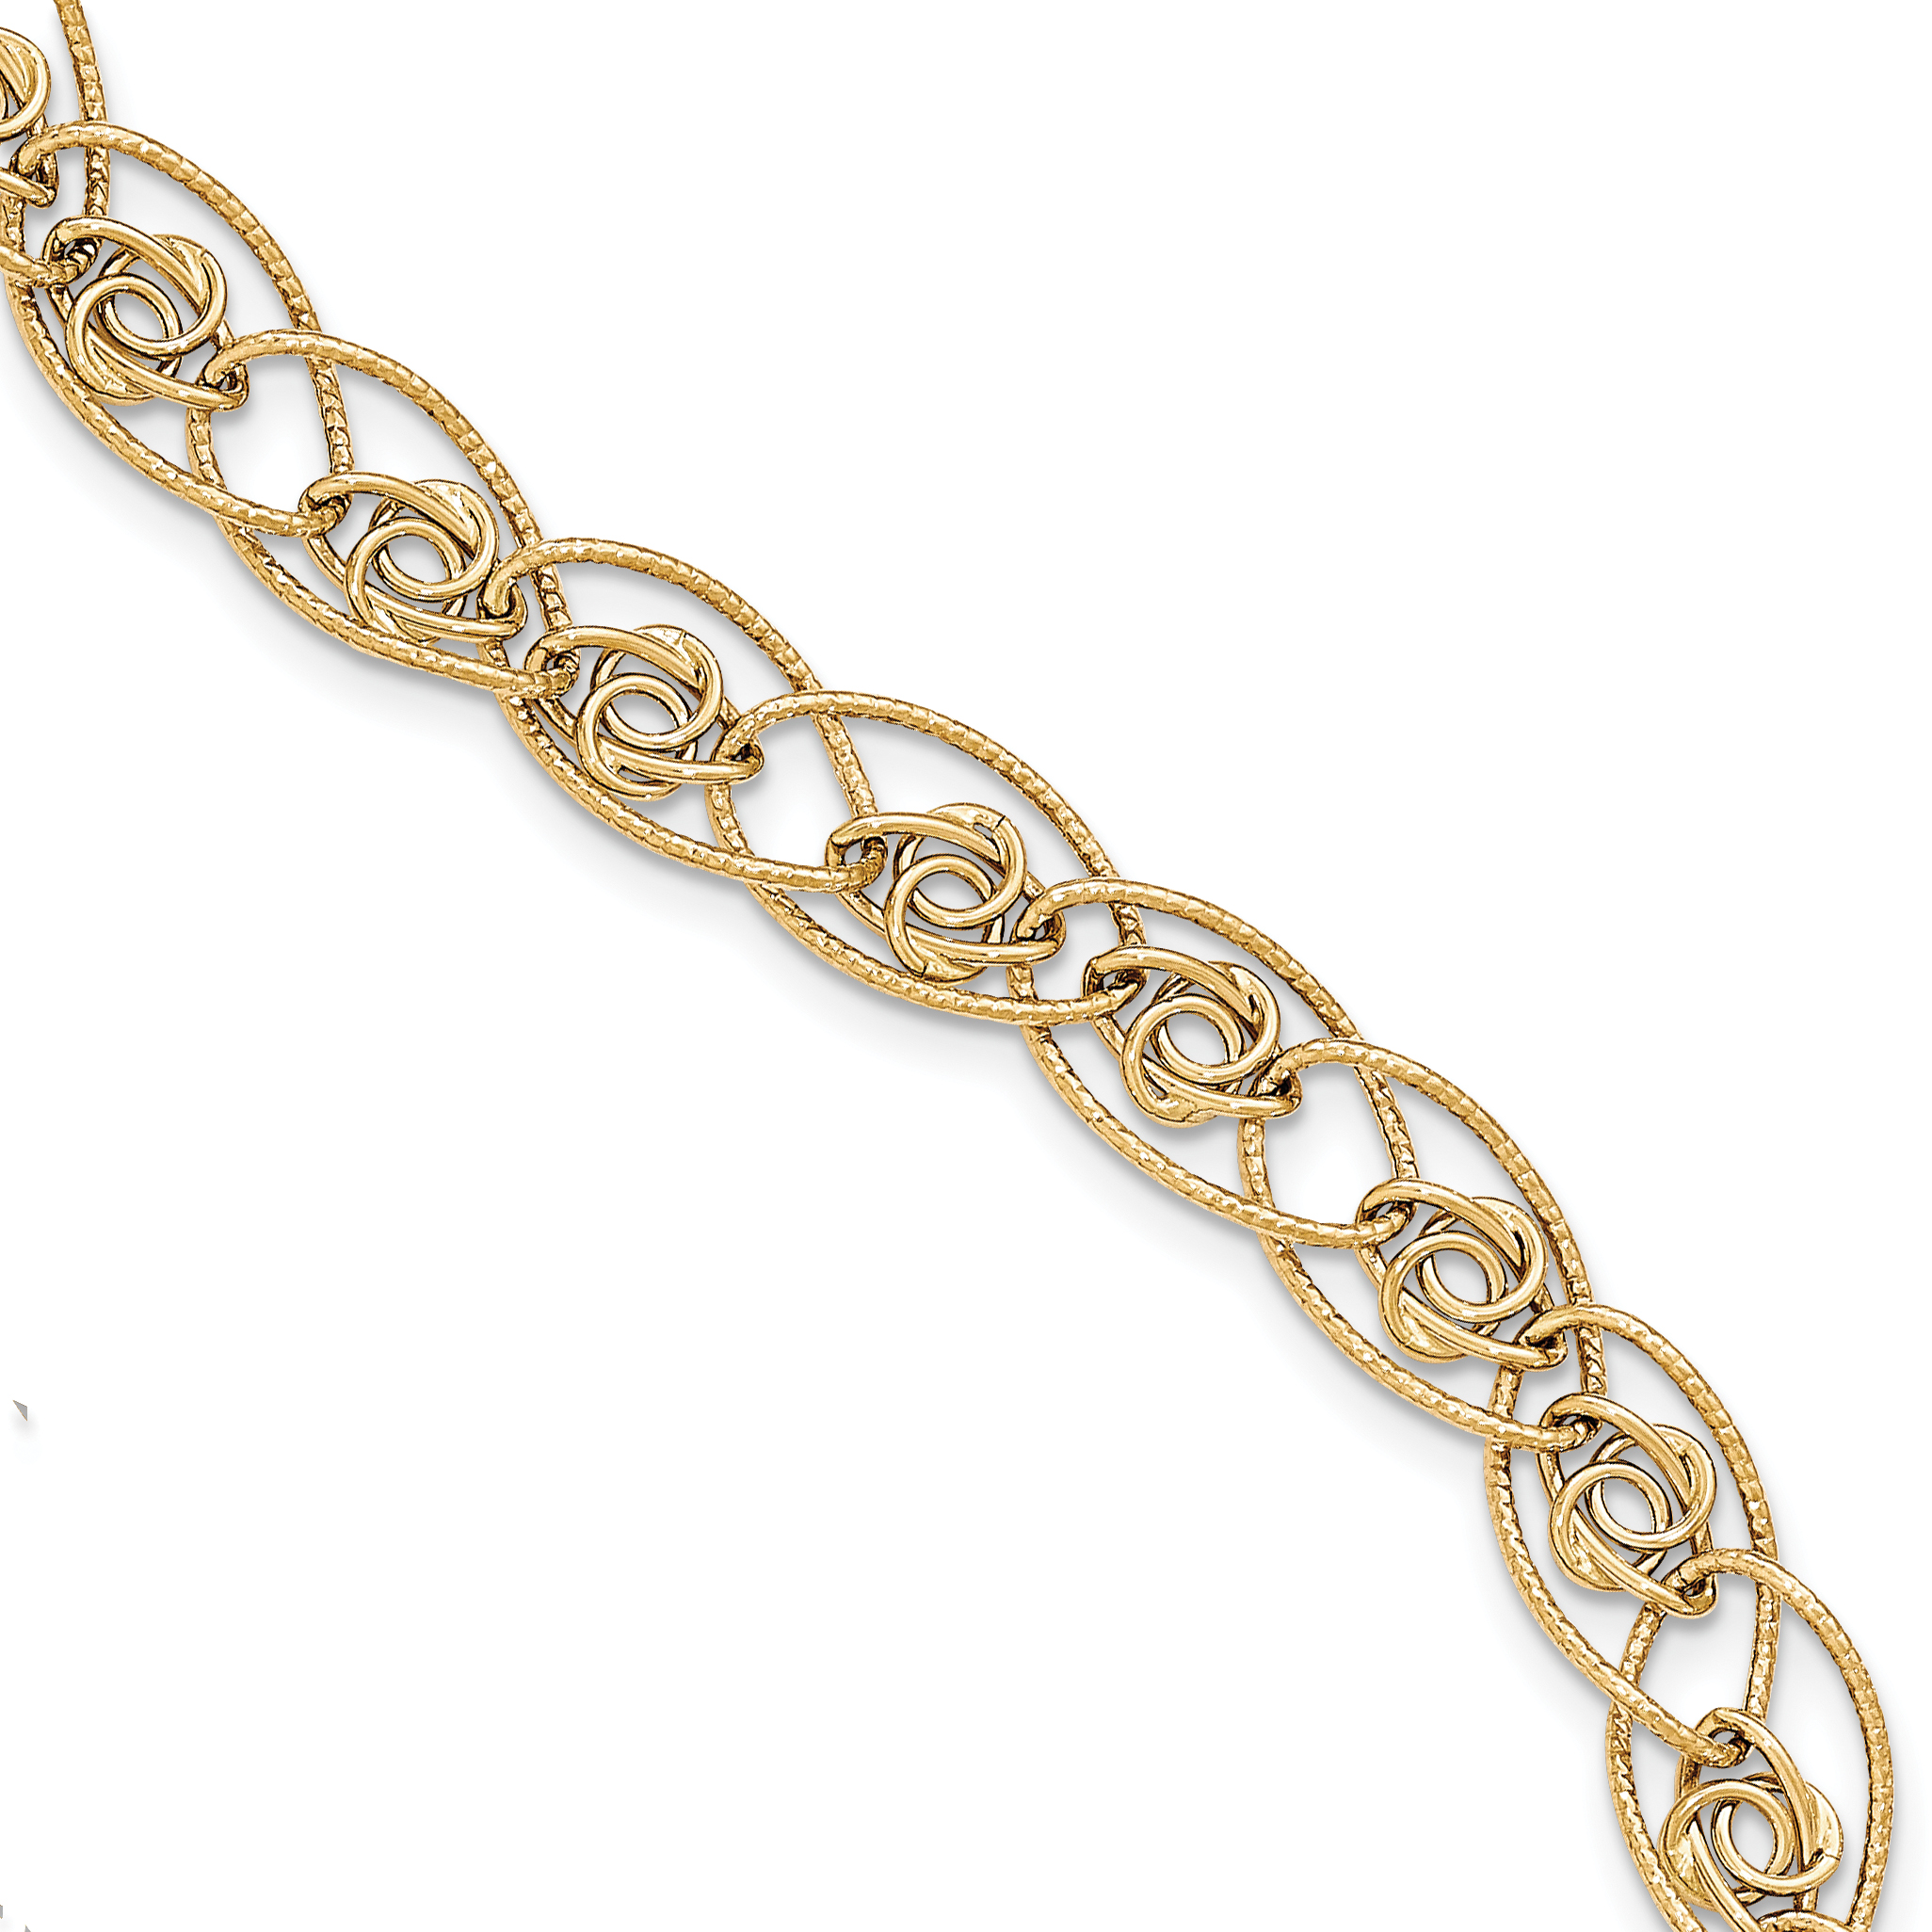 14k Yellow Gold Textured and Polished Fancy Bracelet by